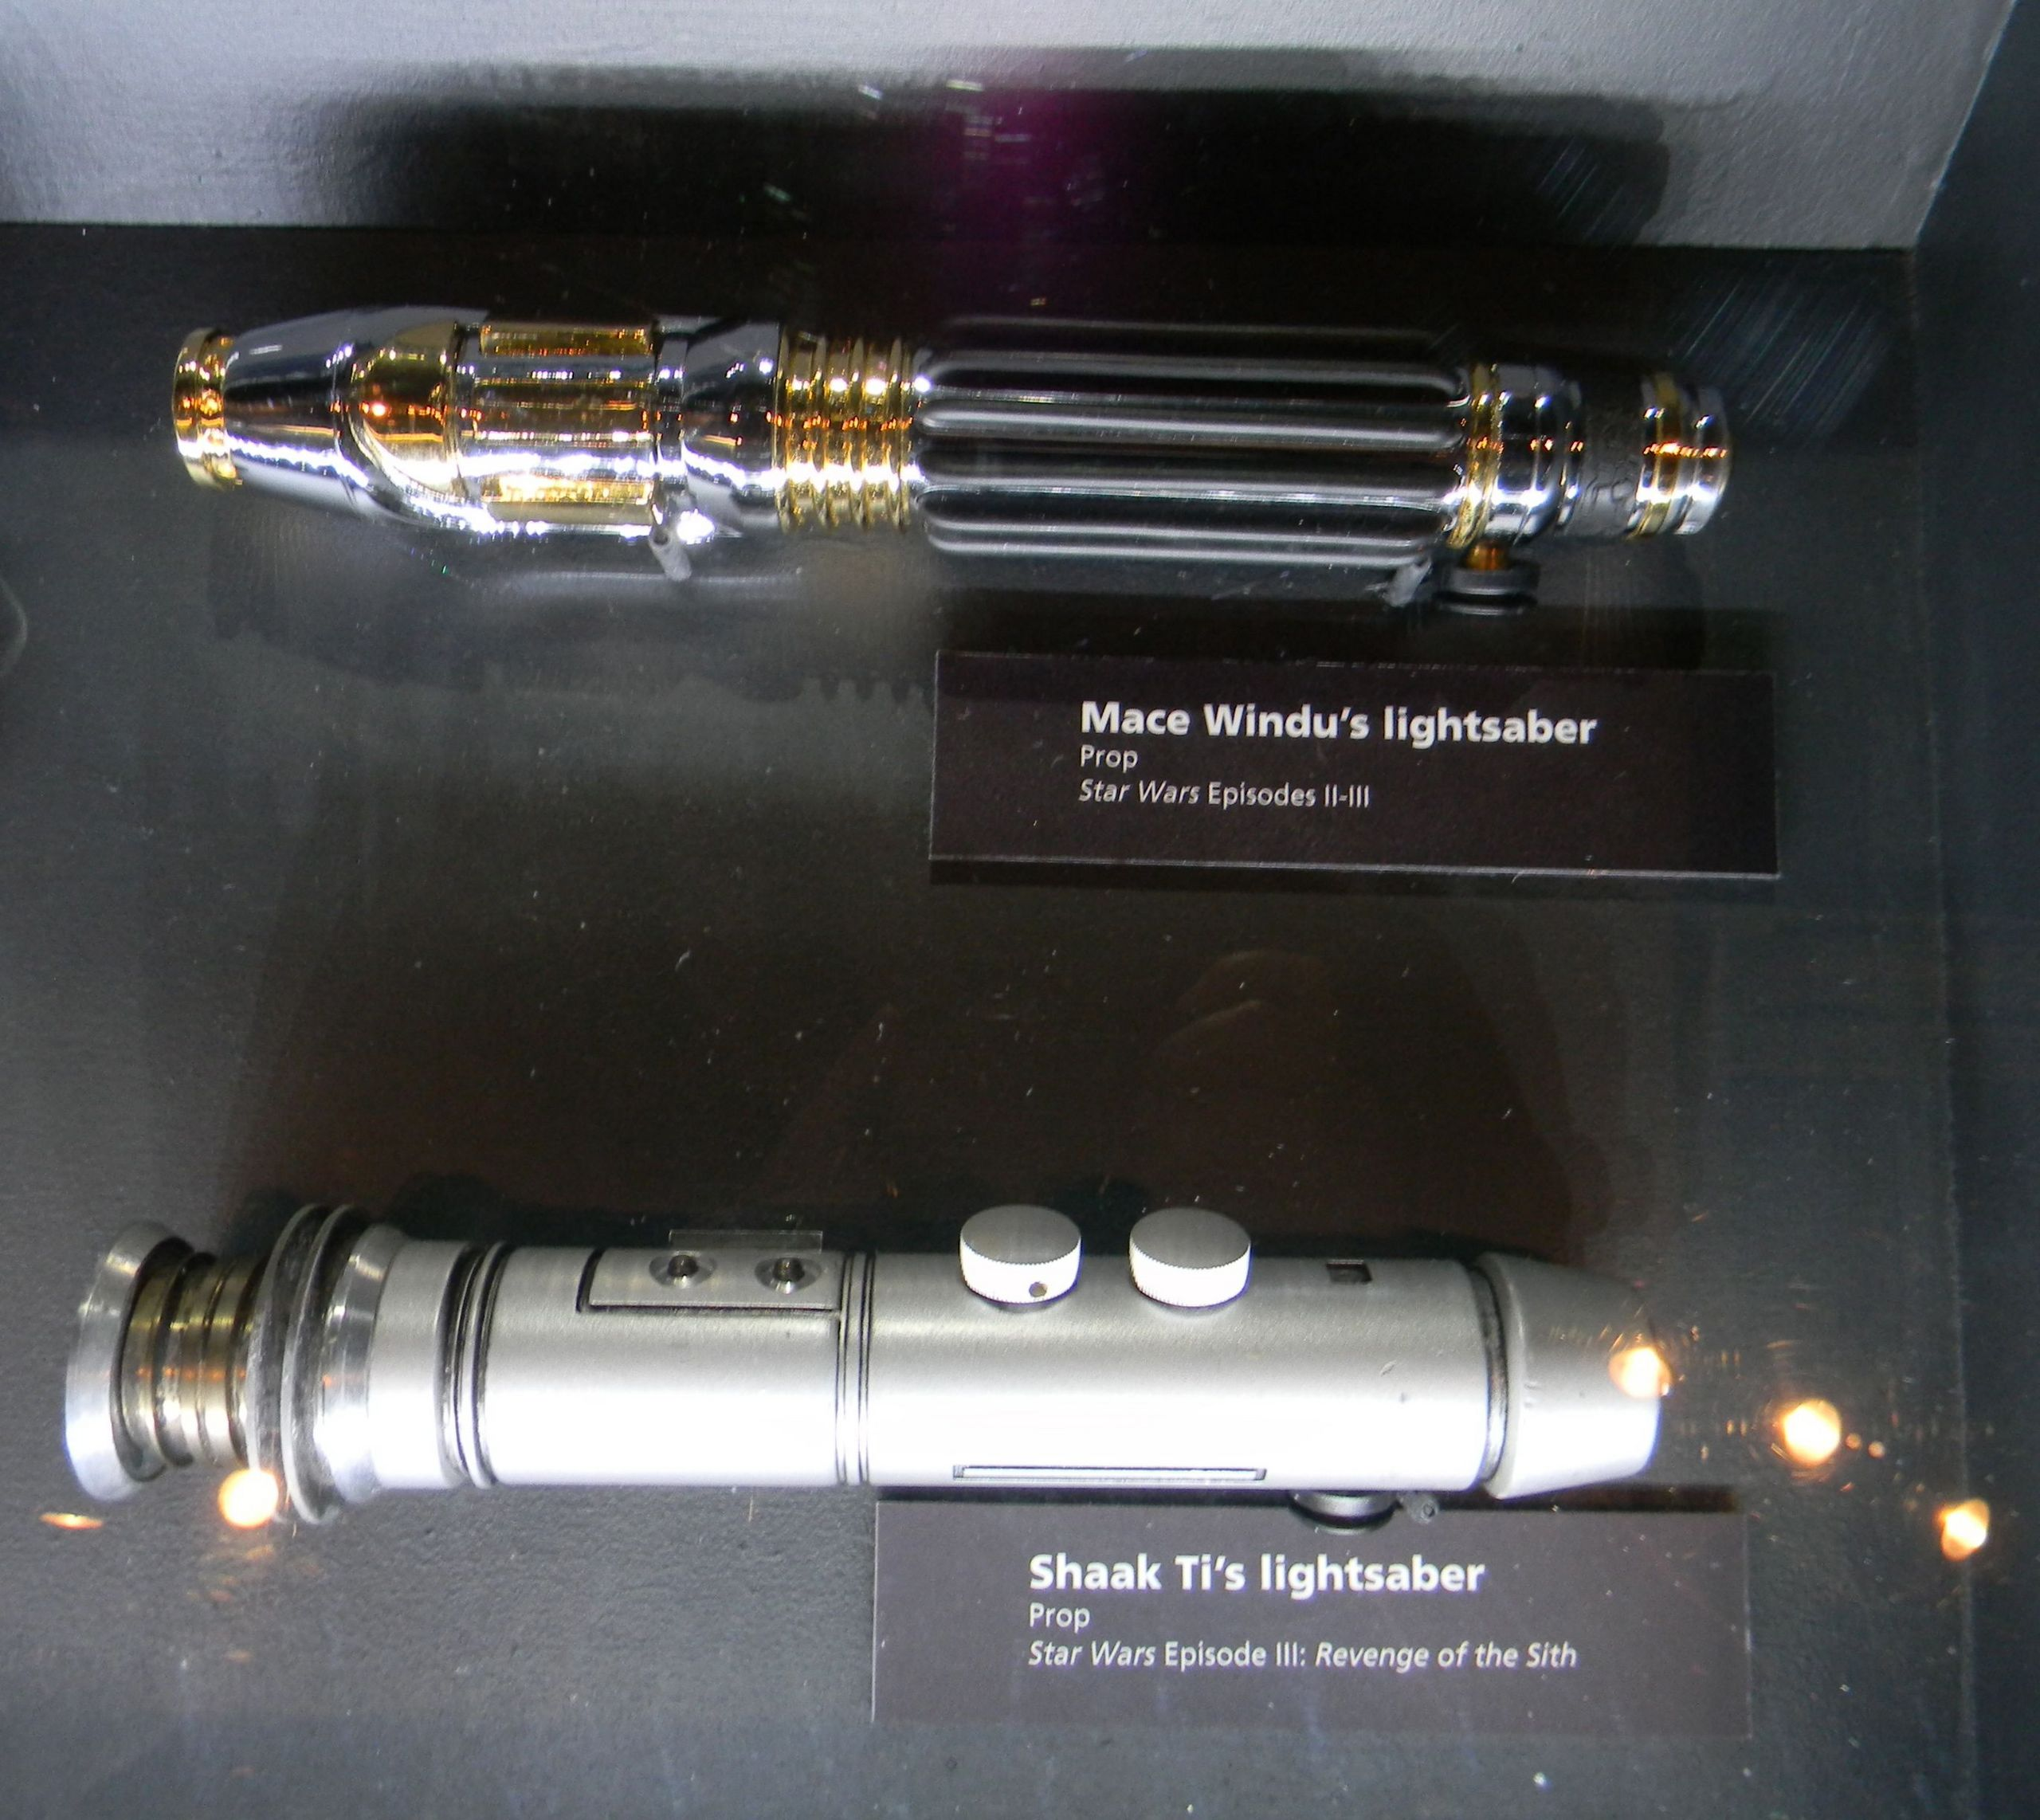 Star wars lightsaber props